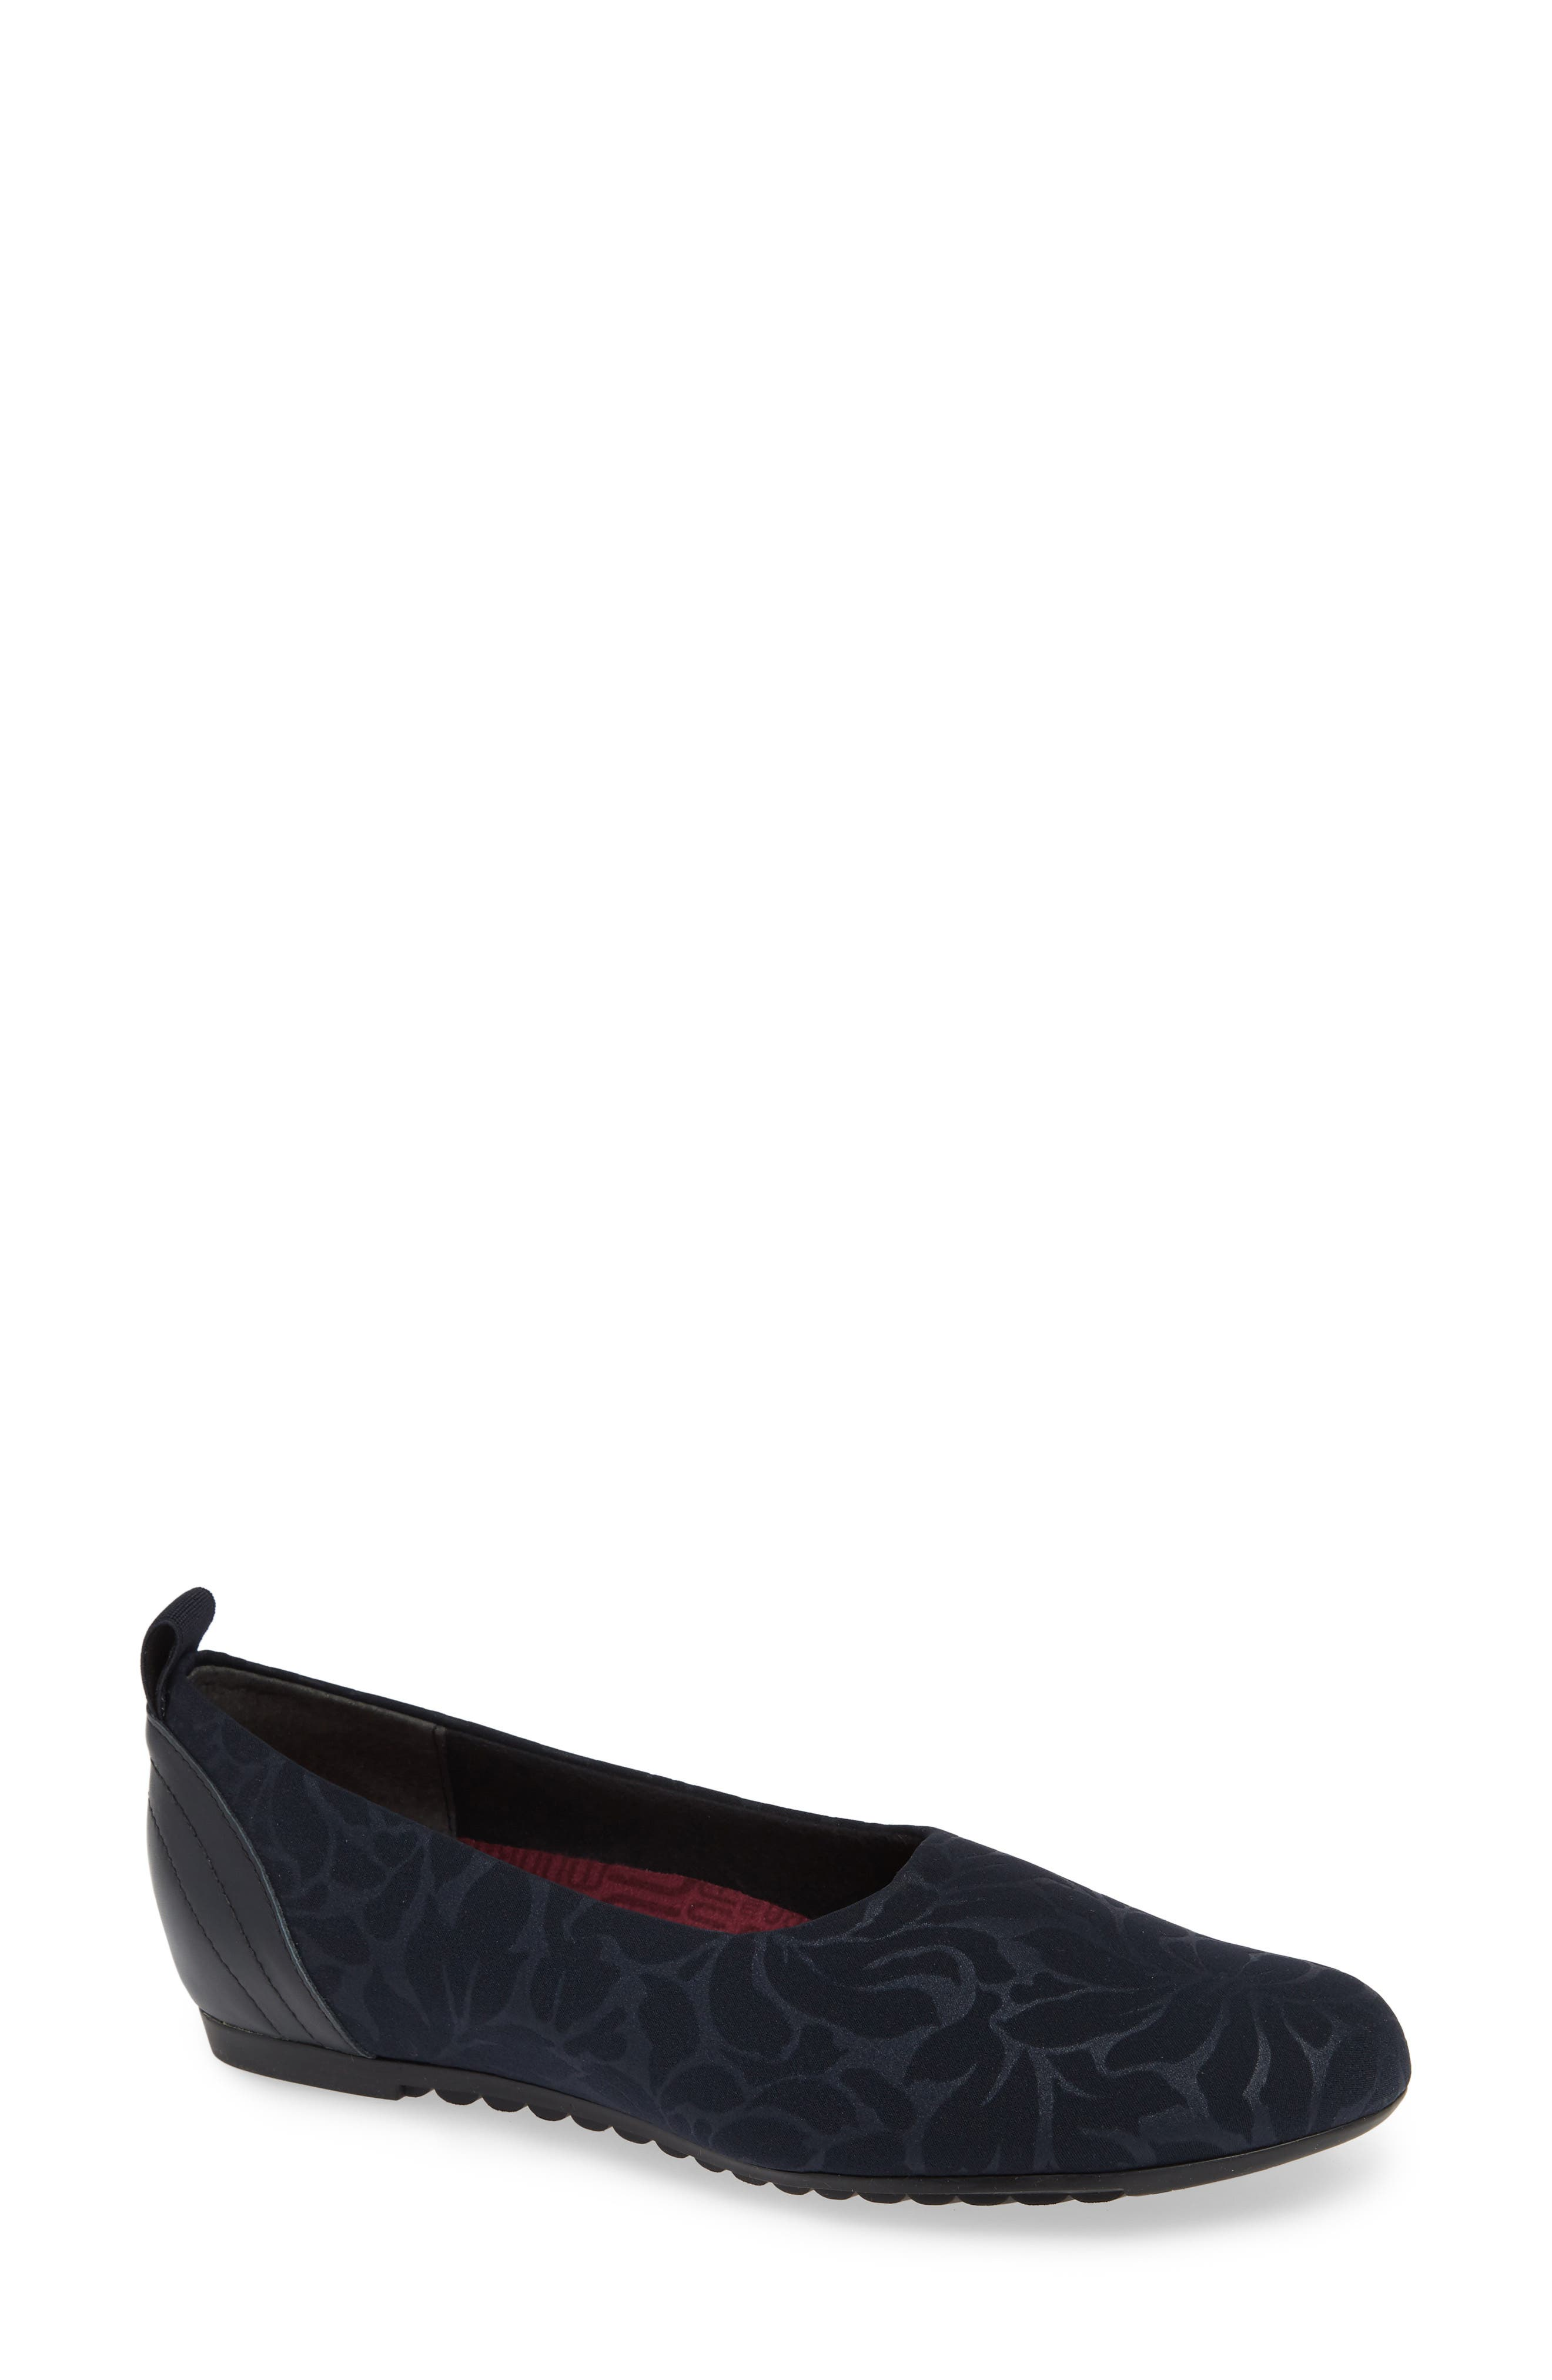 MUNRO, Iriana Flat, Main thumbnail 1, color, NAVY STRETCH FABRIC